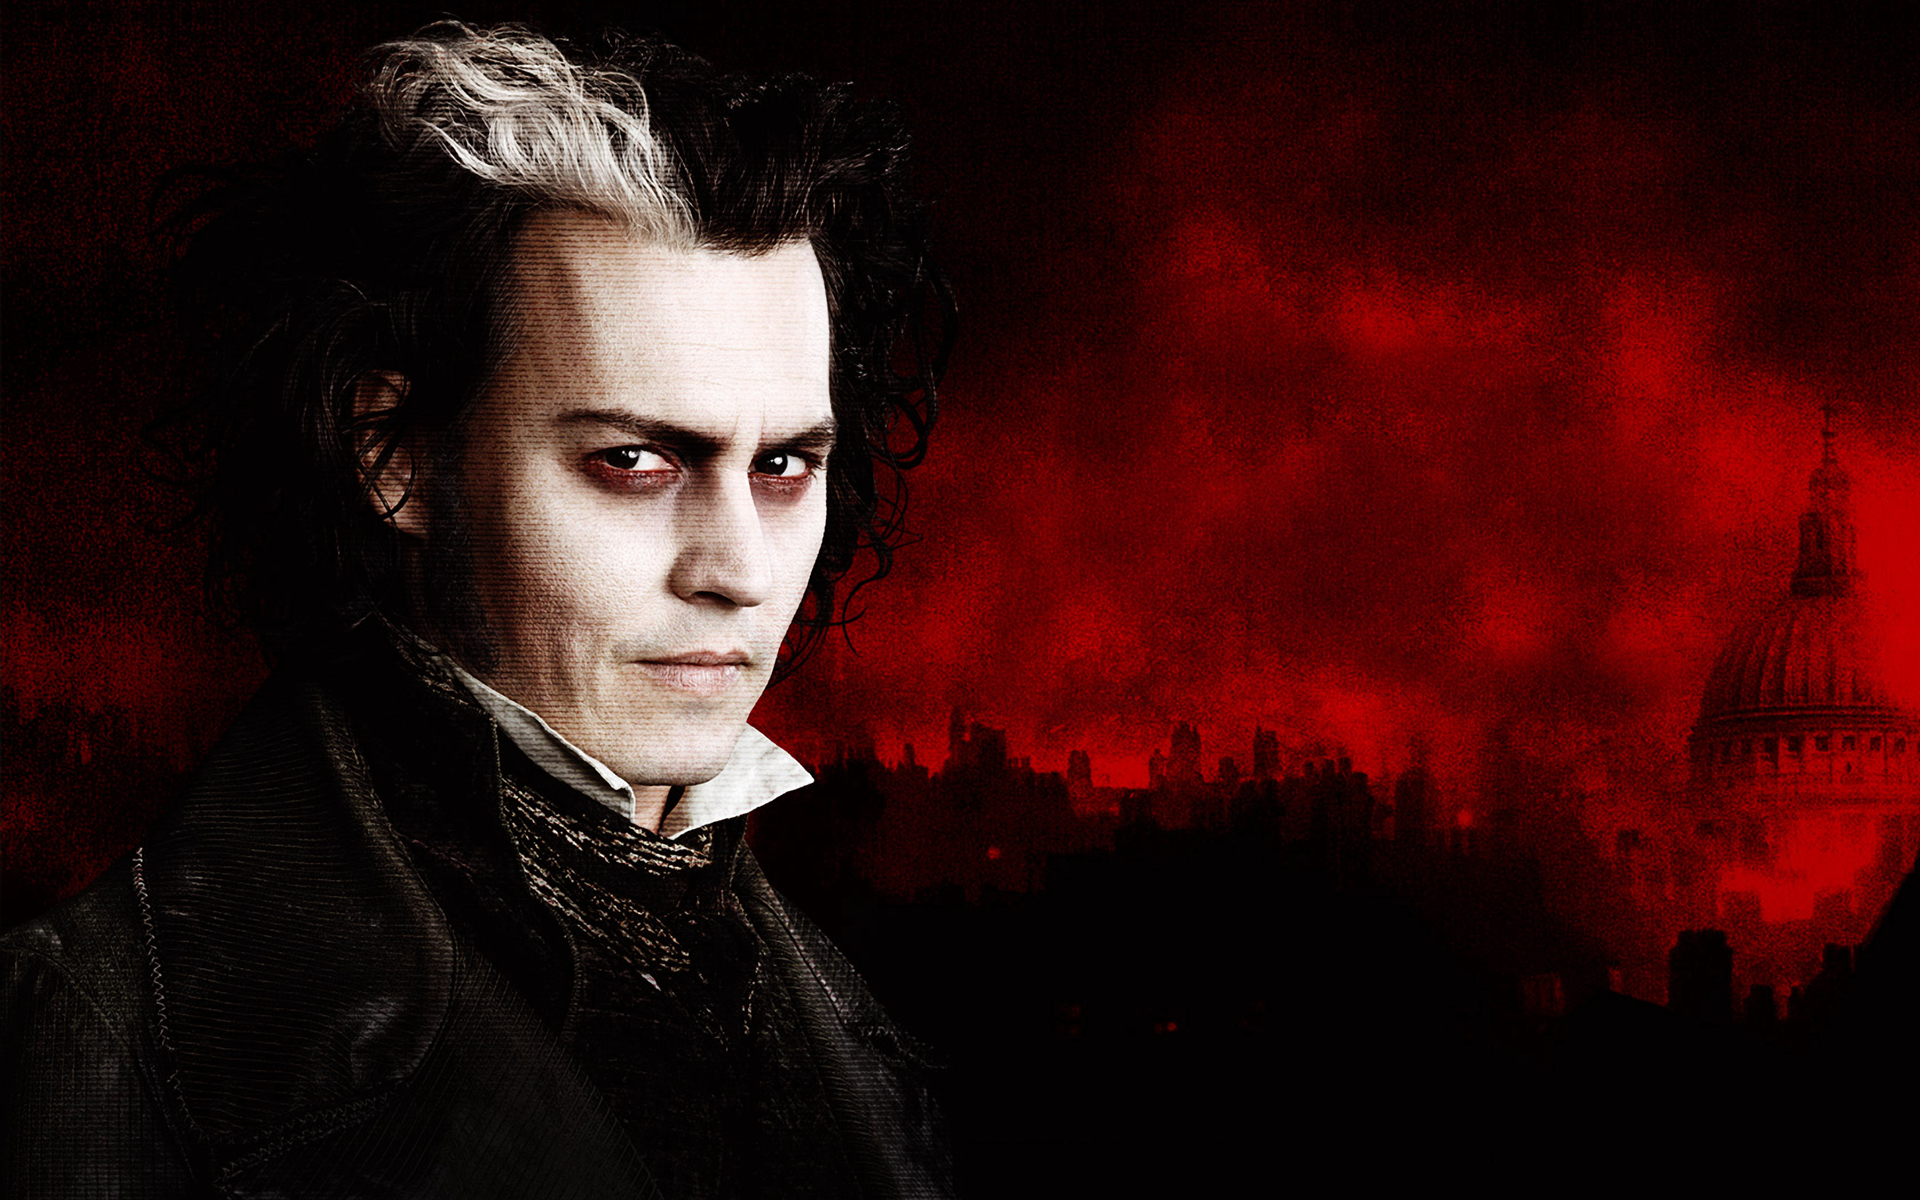 sweeney todd johnny depp HD Wallpaper